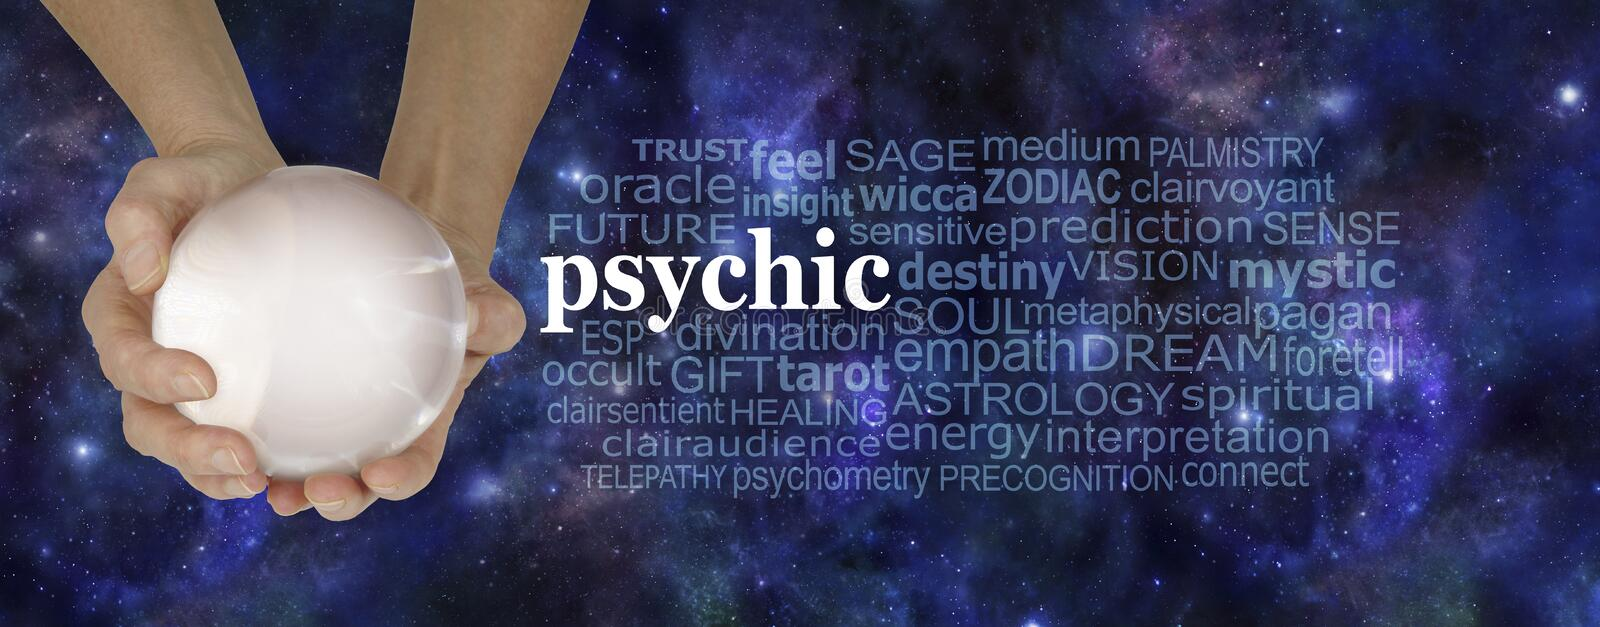 Psychic Powers Fortune Teller`s Word Cloud stock photos